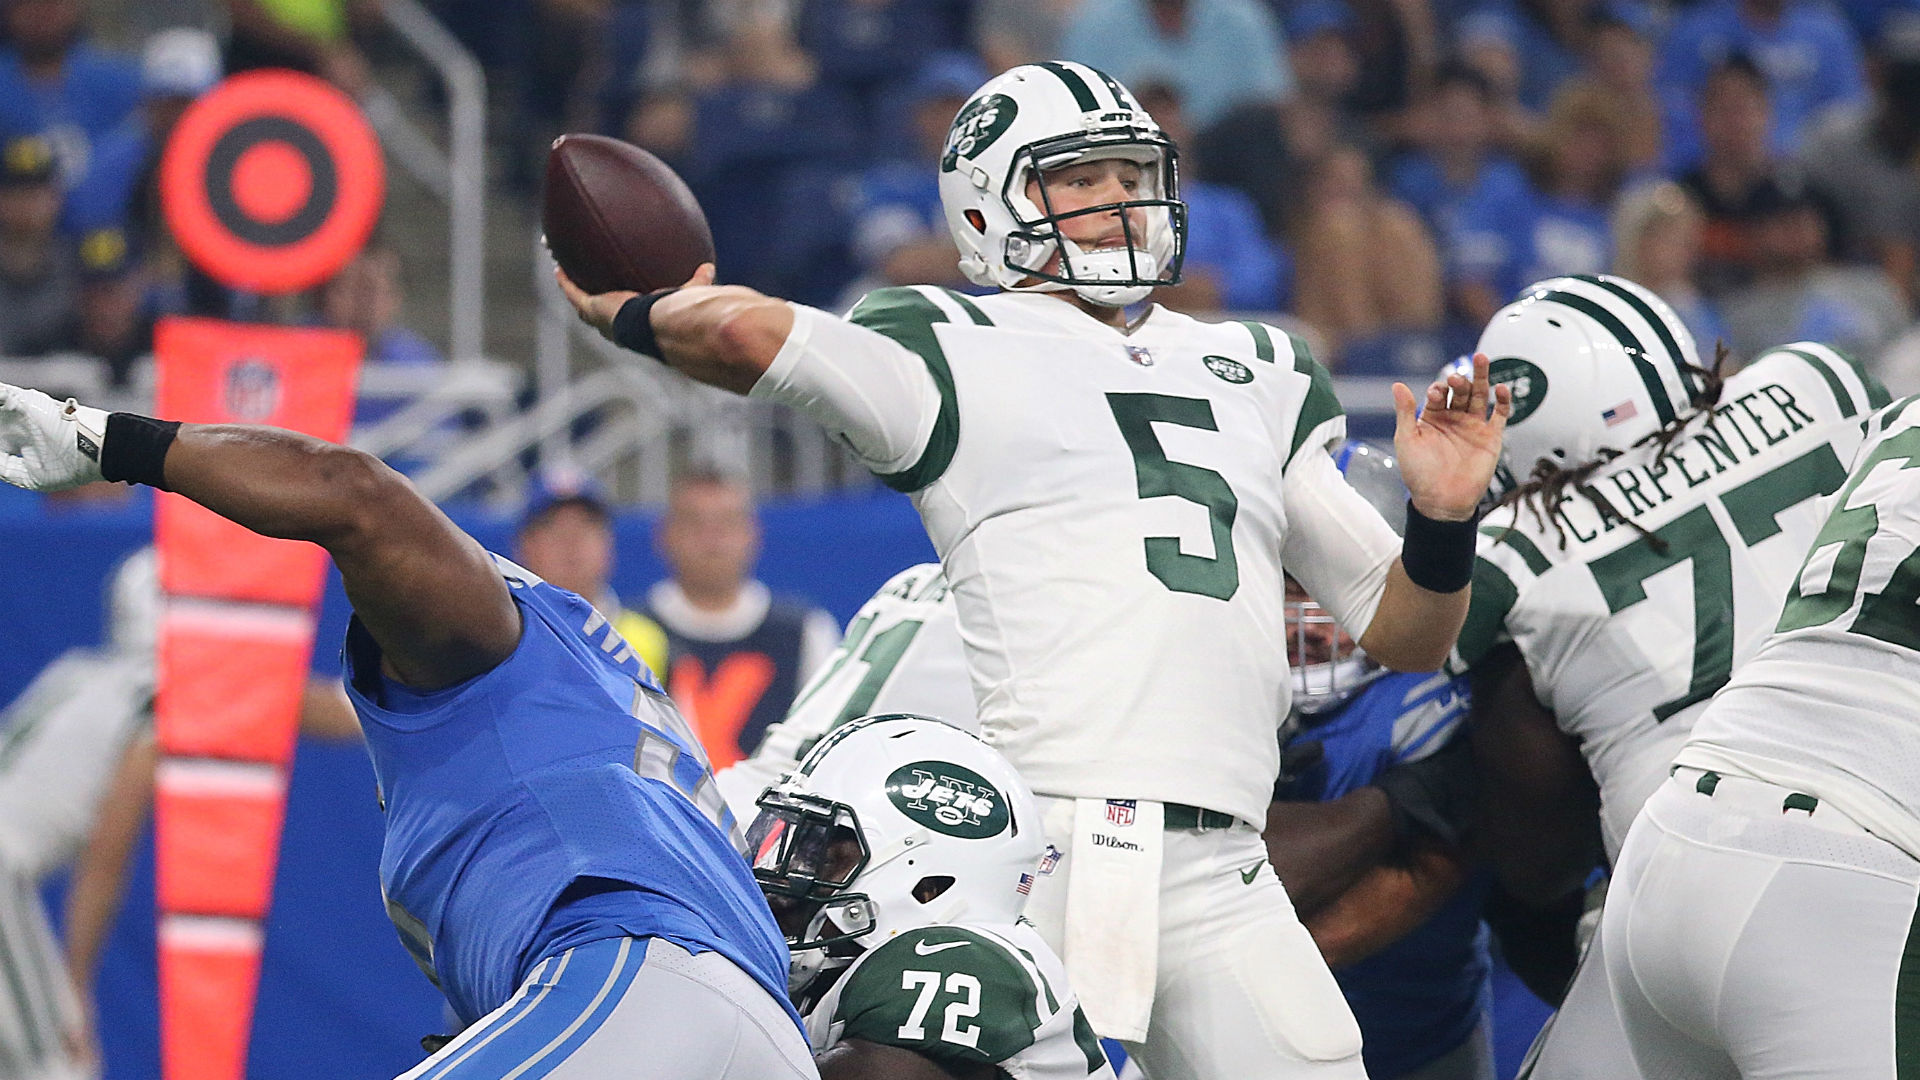 NFL free agency news: Eagles sign former Jets quarterback Christian Hackenberg